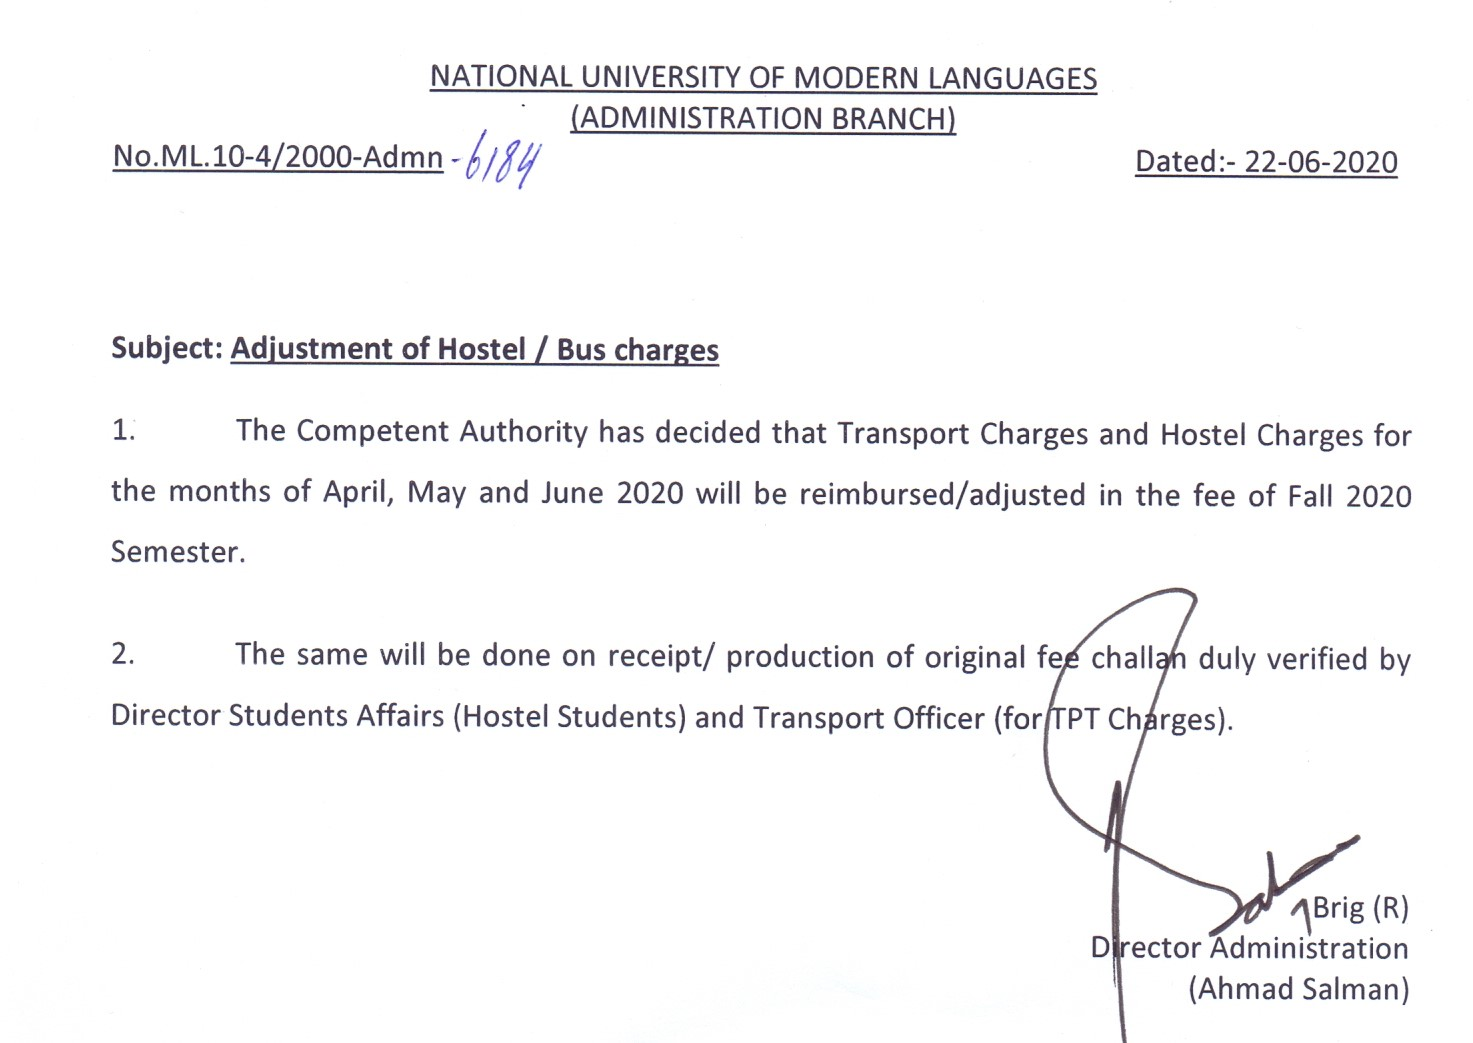 Adjustment of Hostel / Bus charges